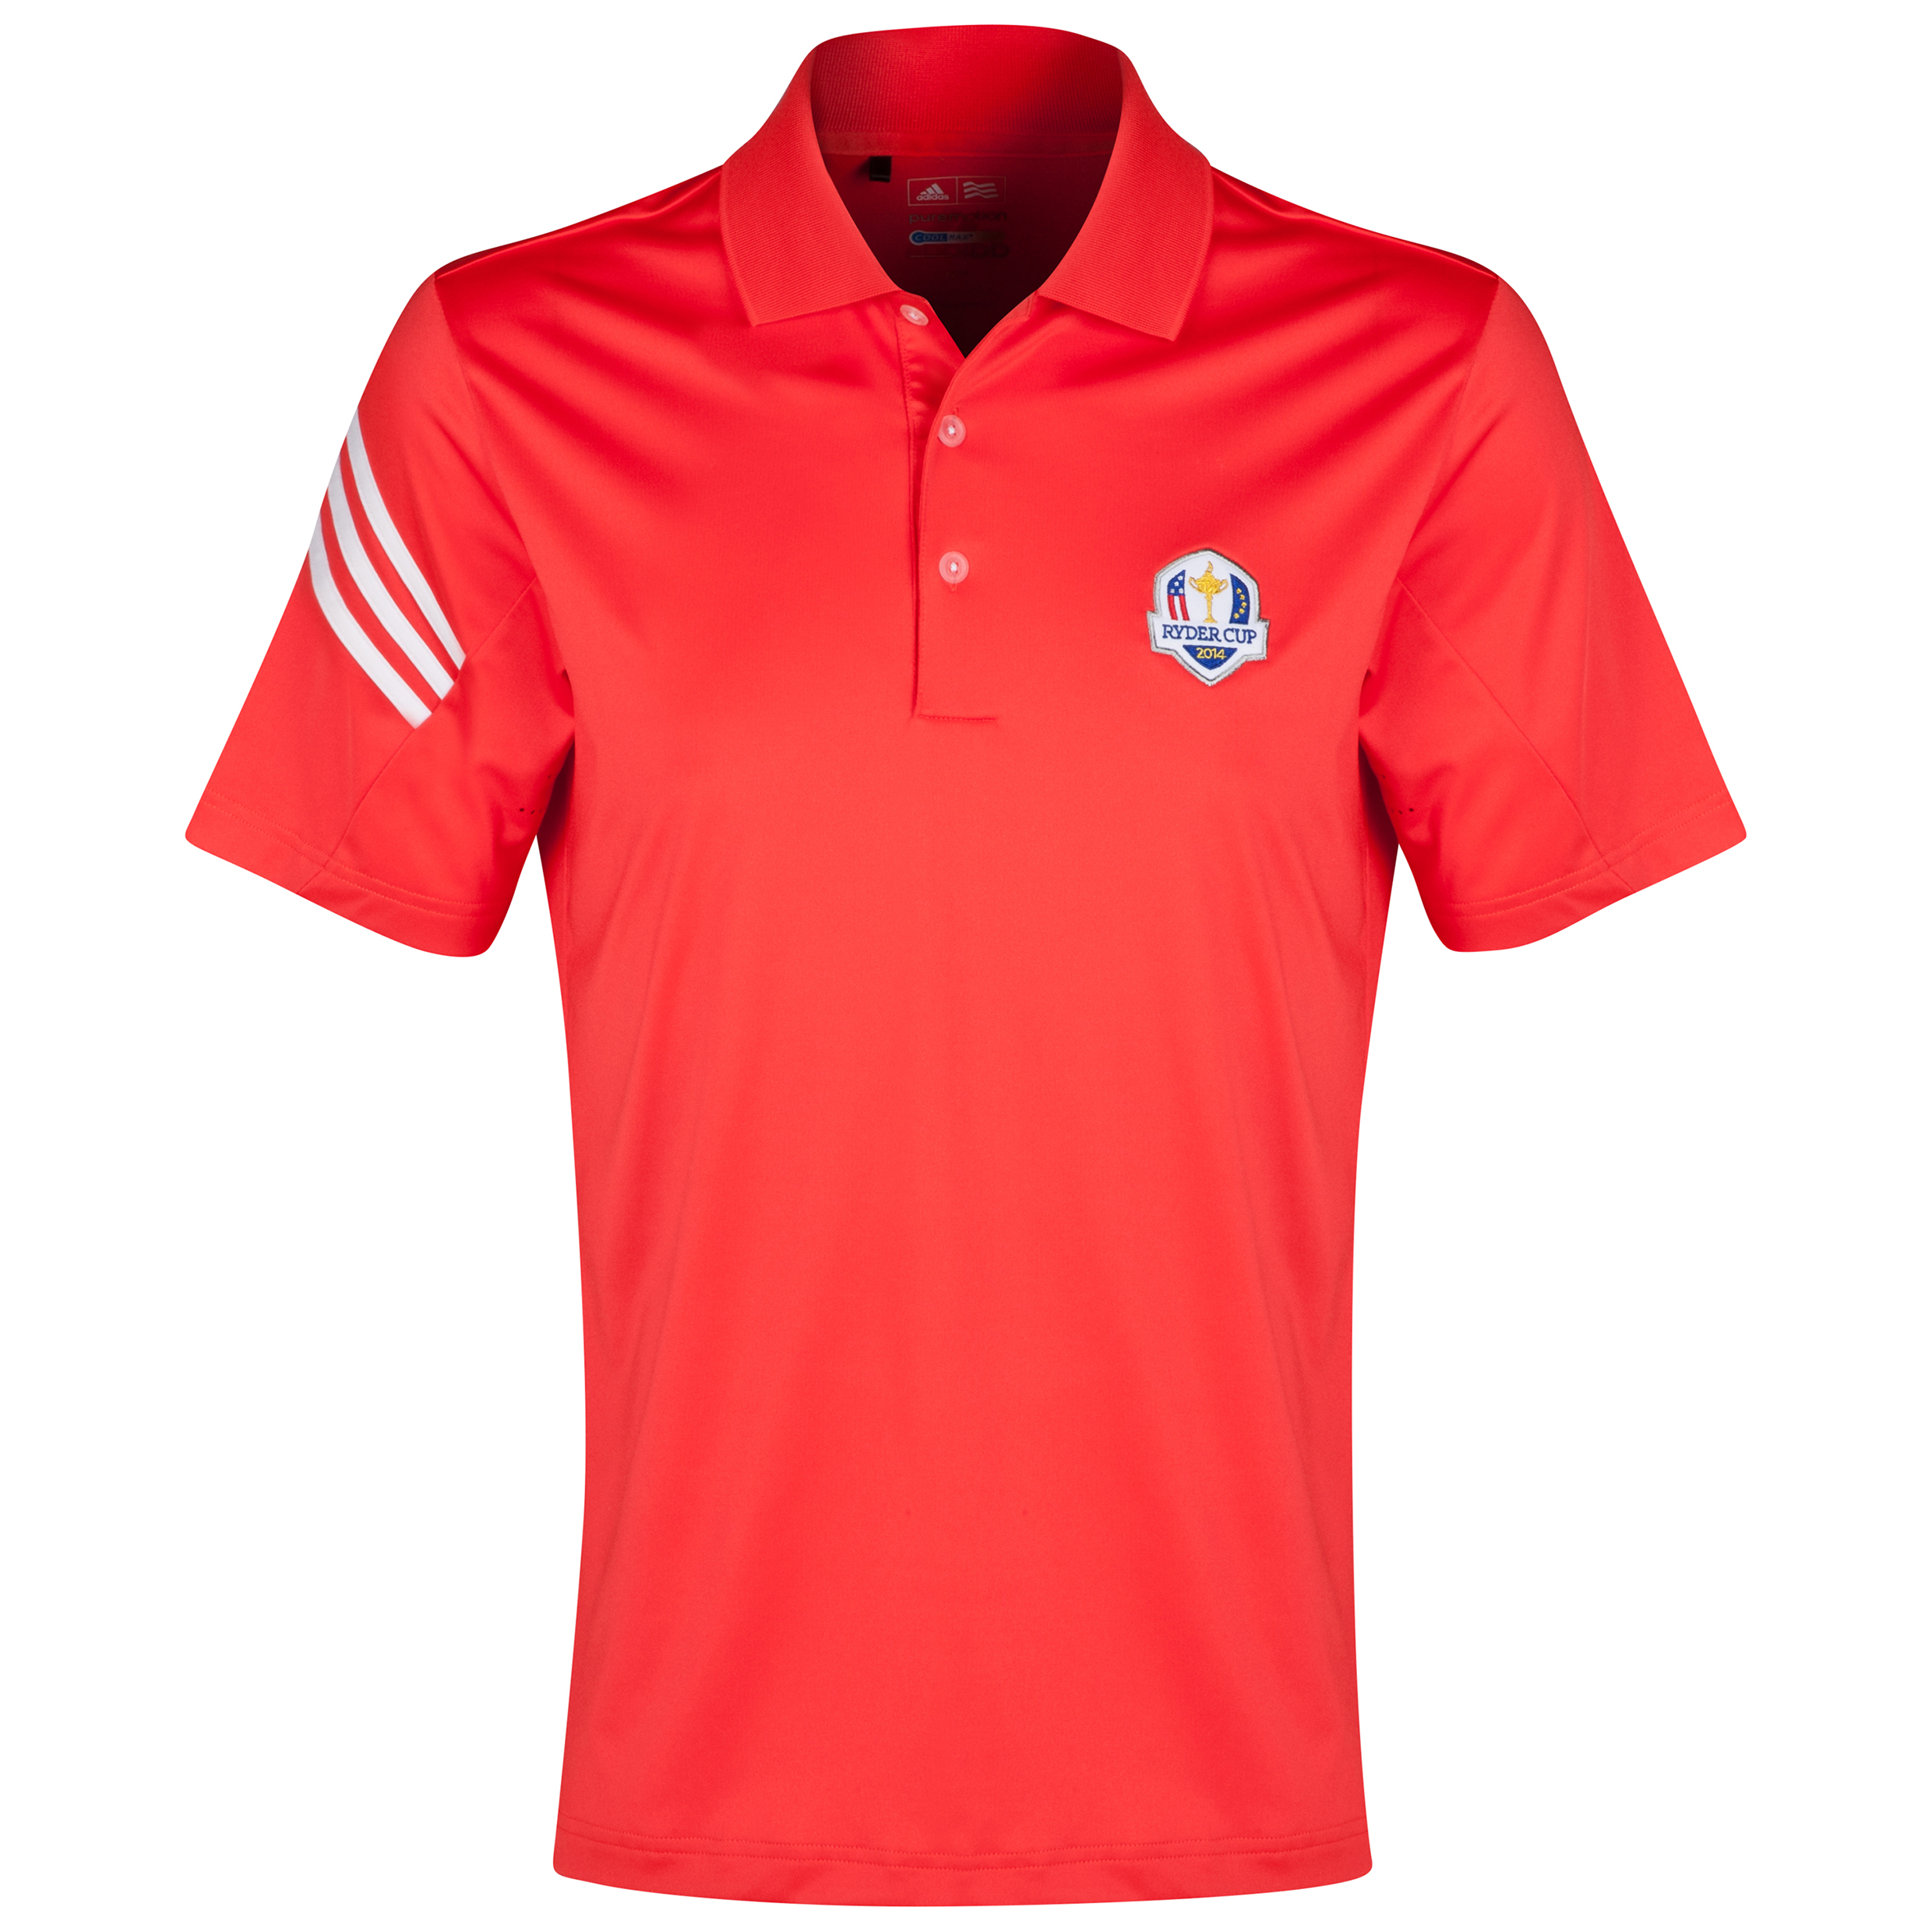 The 2014 Ryder Cup adidas ClimaLite 3-Stripes Polo Red